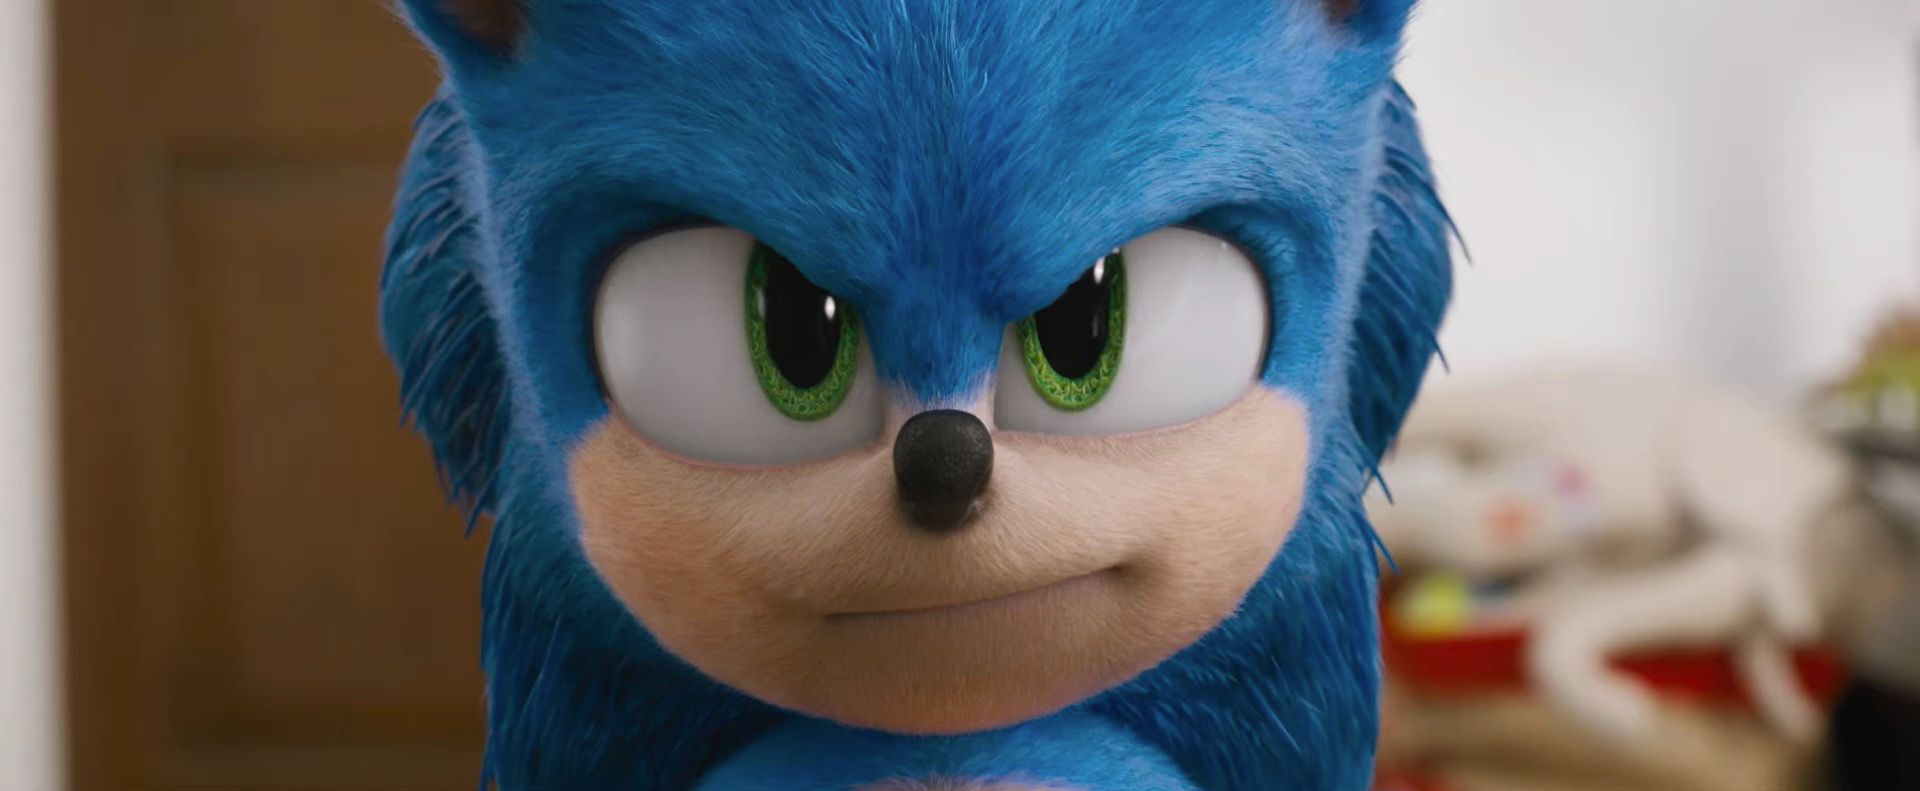 Sonic the Hedgehog's design was never the movie's biggest challenge